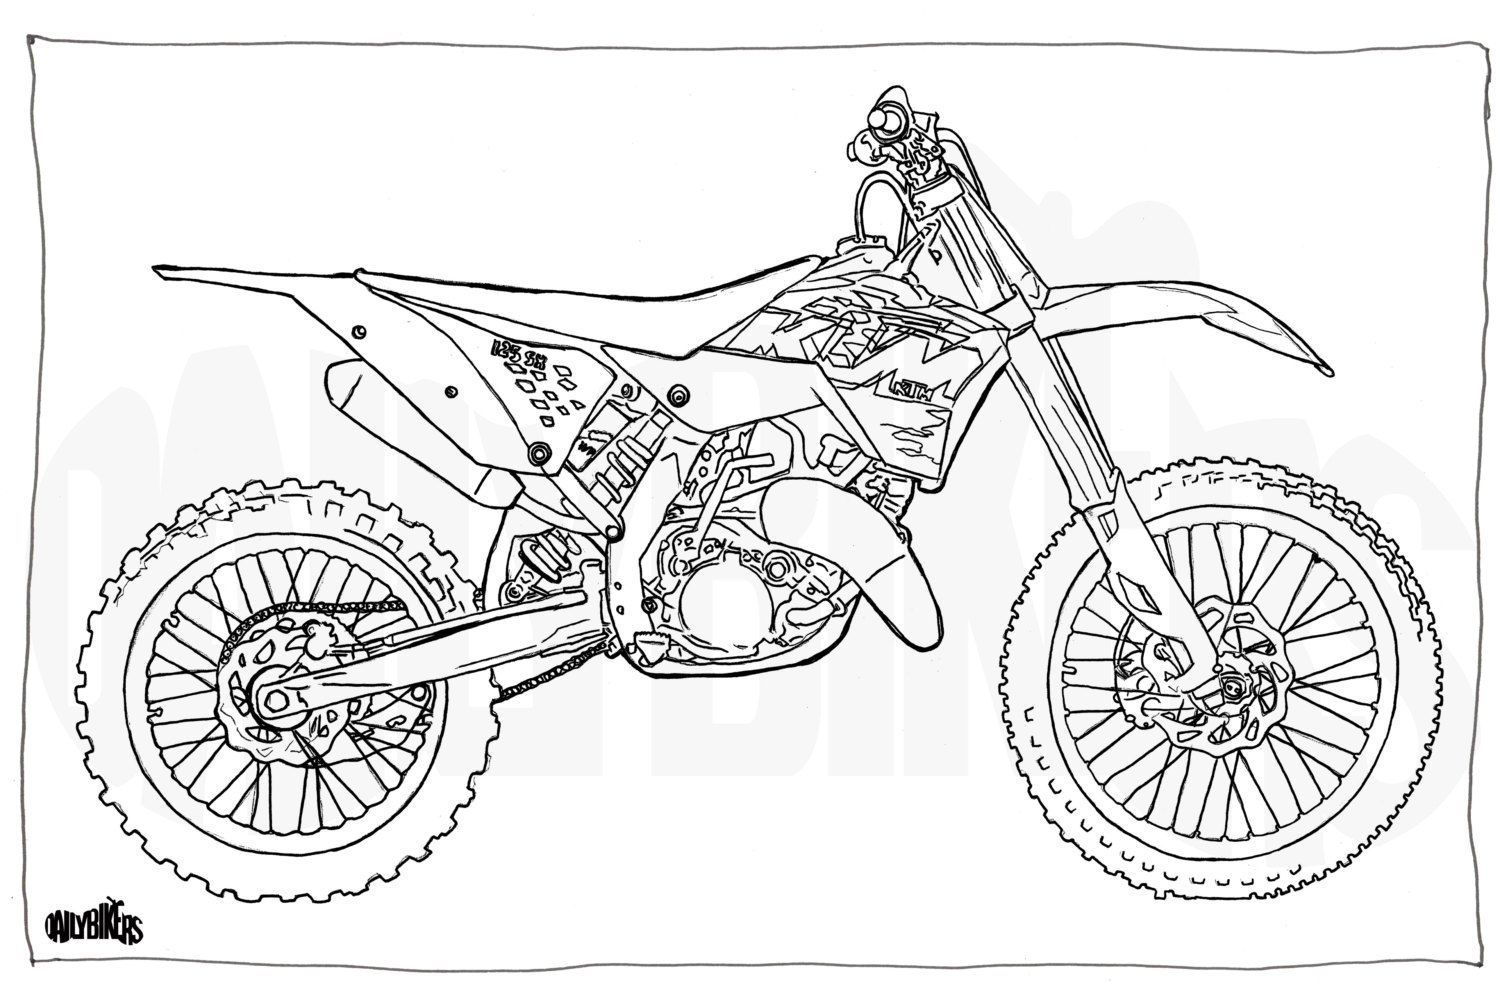 pictures of dirt bikes to color dirt bike coloring sheets printable 7 image coloringsnet bikes pictures of color dirt to